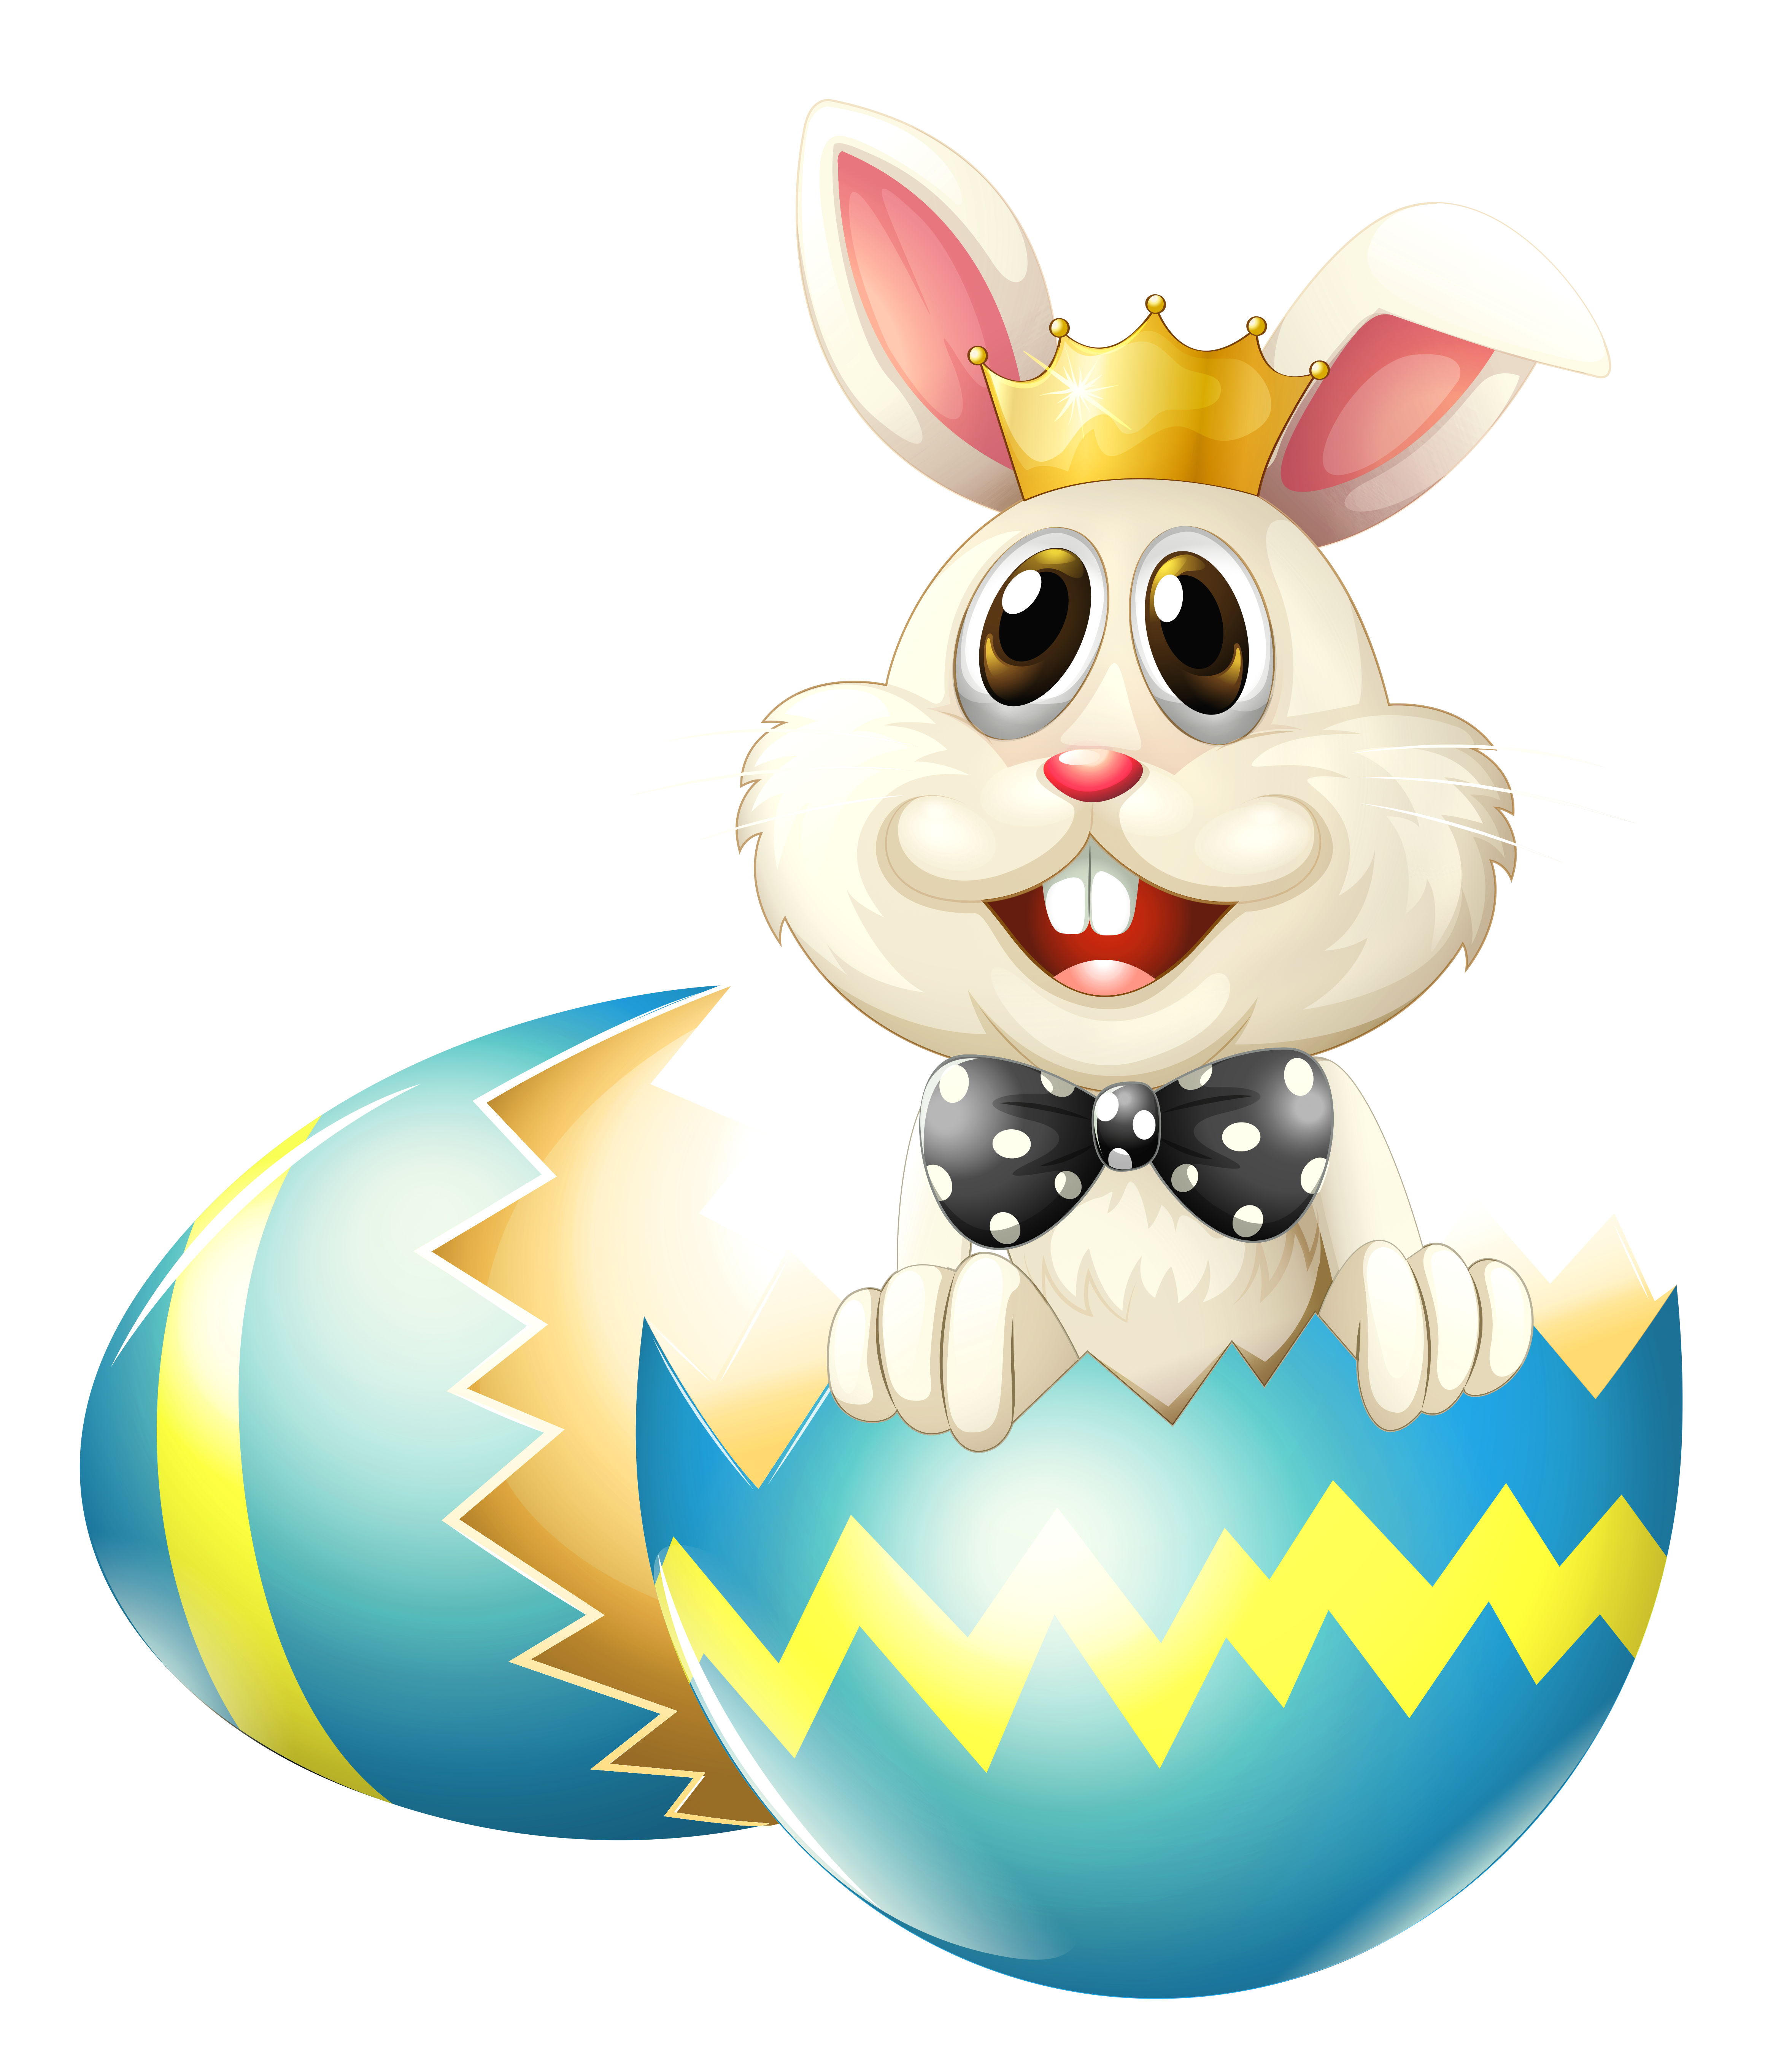 Easter egg crown clipart jpg royalty free library Easter Bunny with Crown PNG Clipart Picture | Gallery Yopriceville ... jpg royalty free library